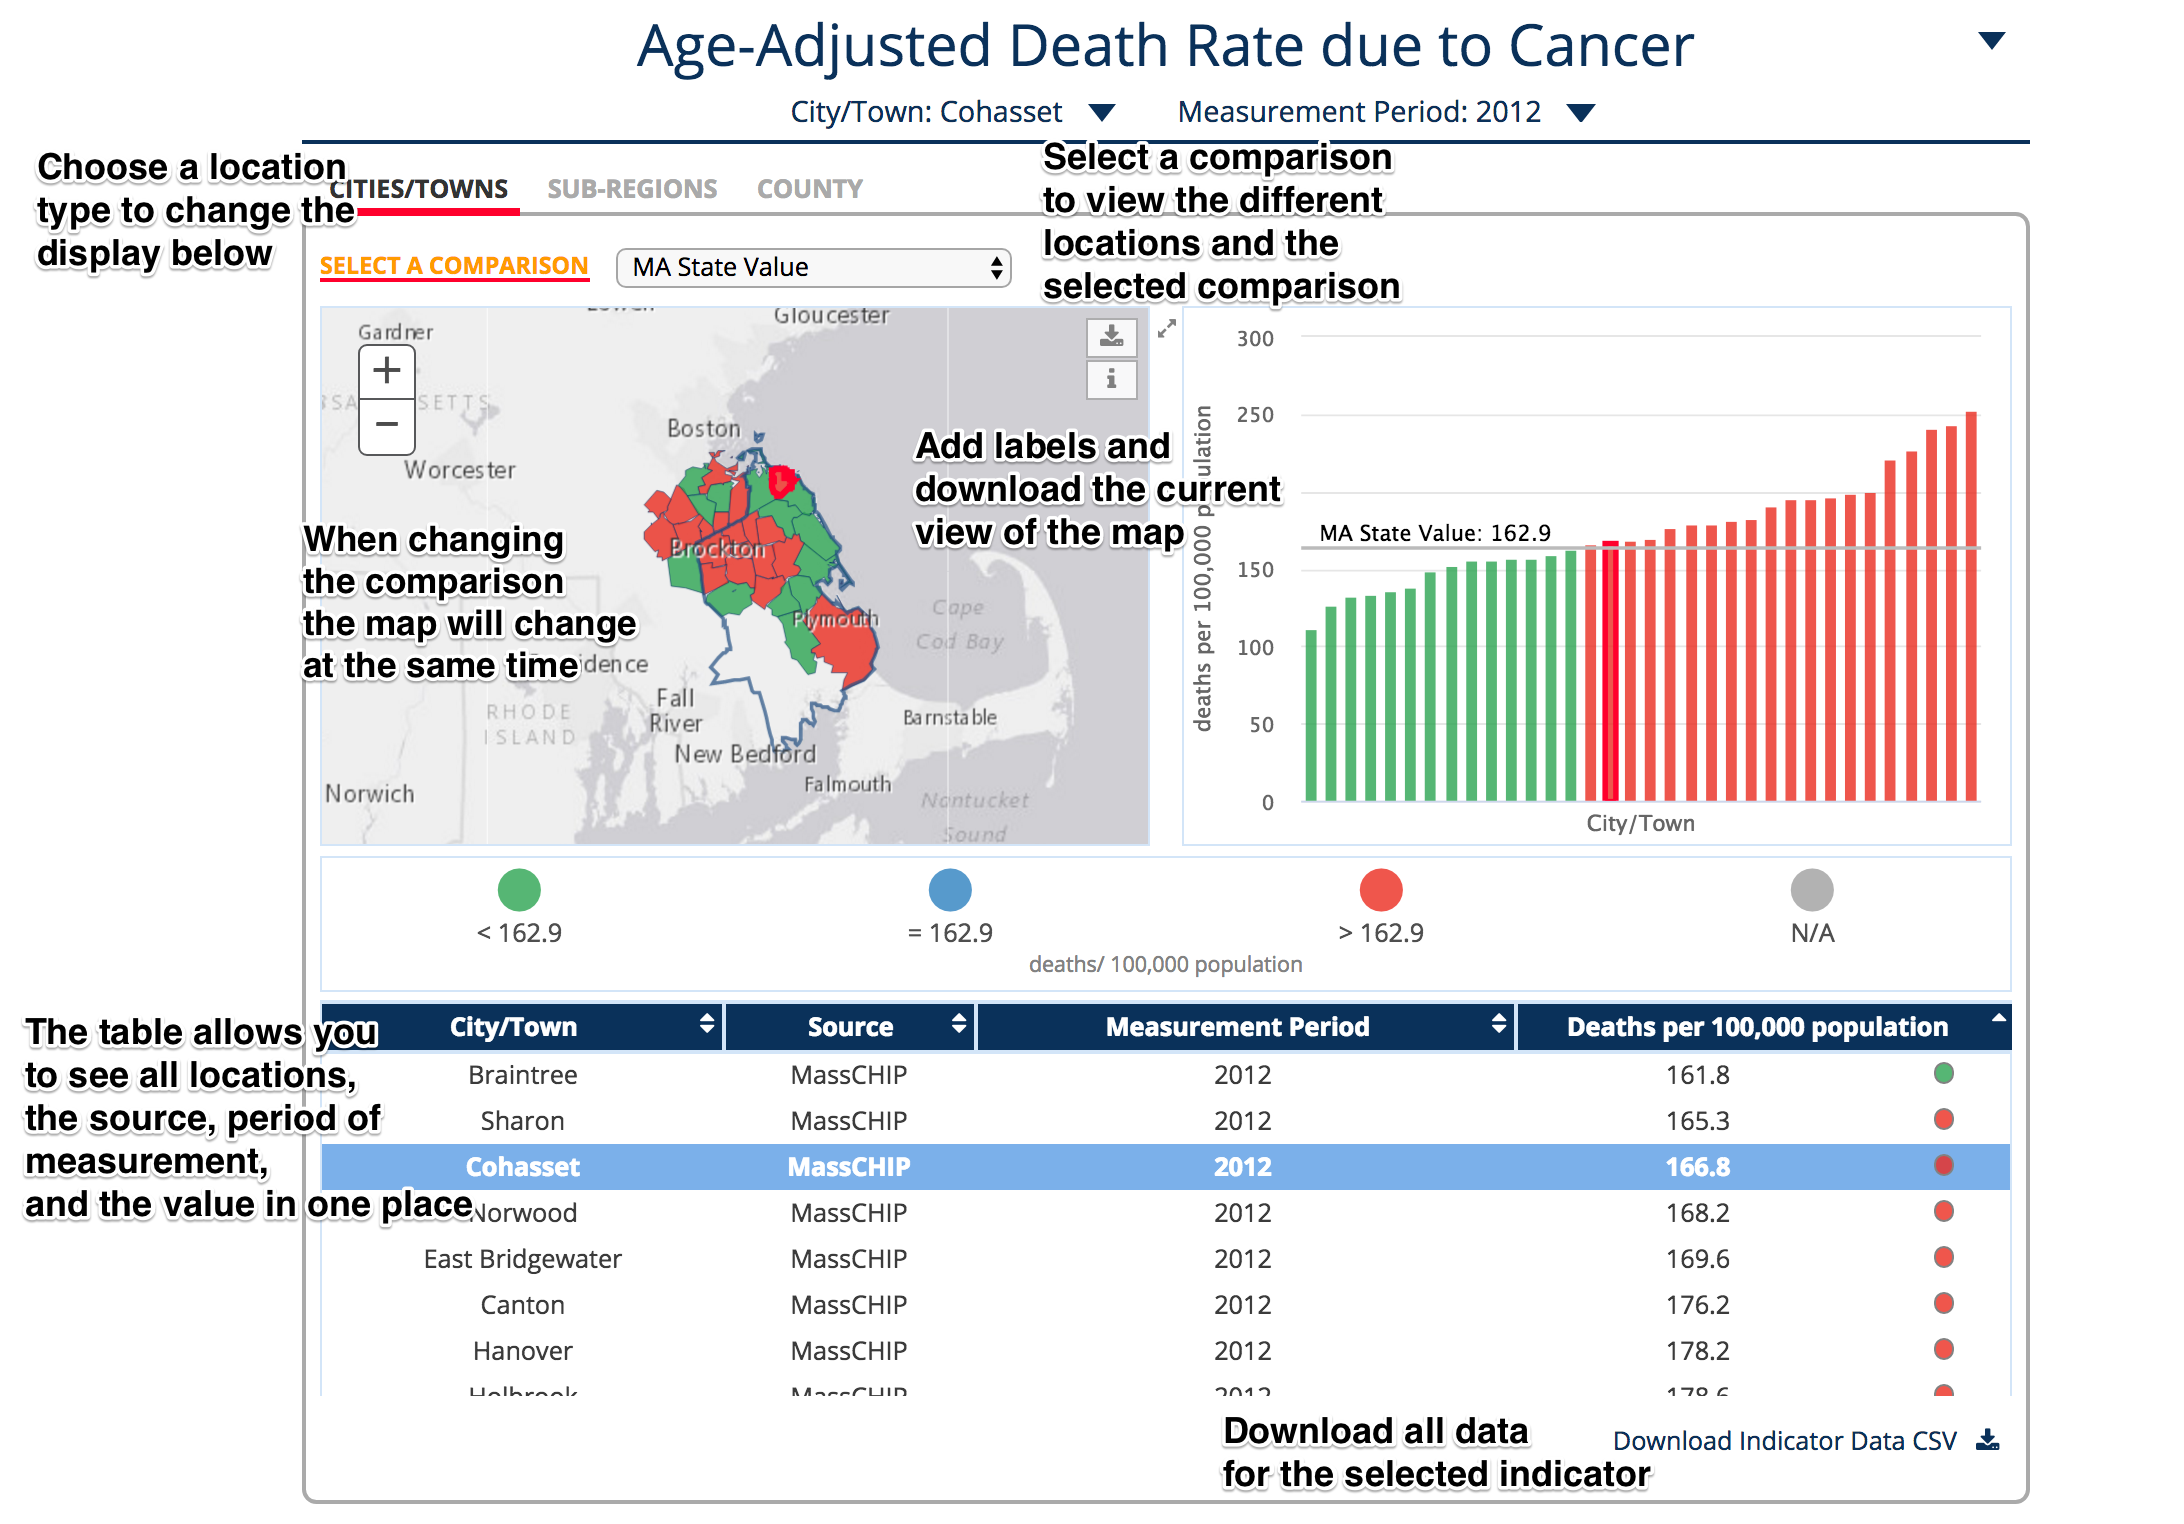 South_Shore____Indicators____Age-Adjusted_Death_Rate_due_to_Cancer.png